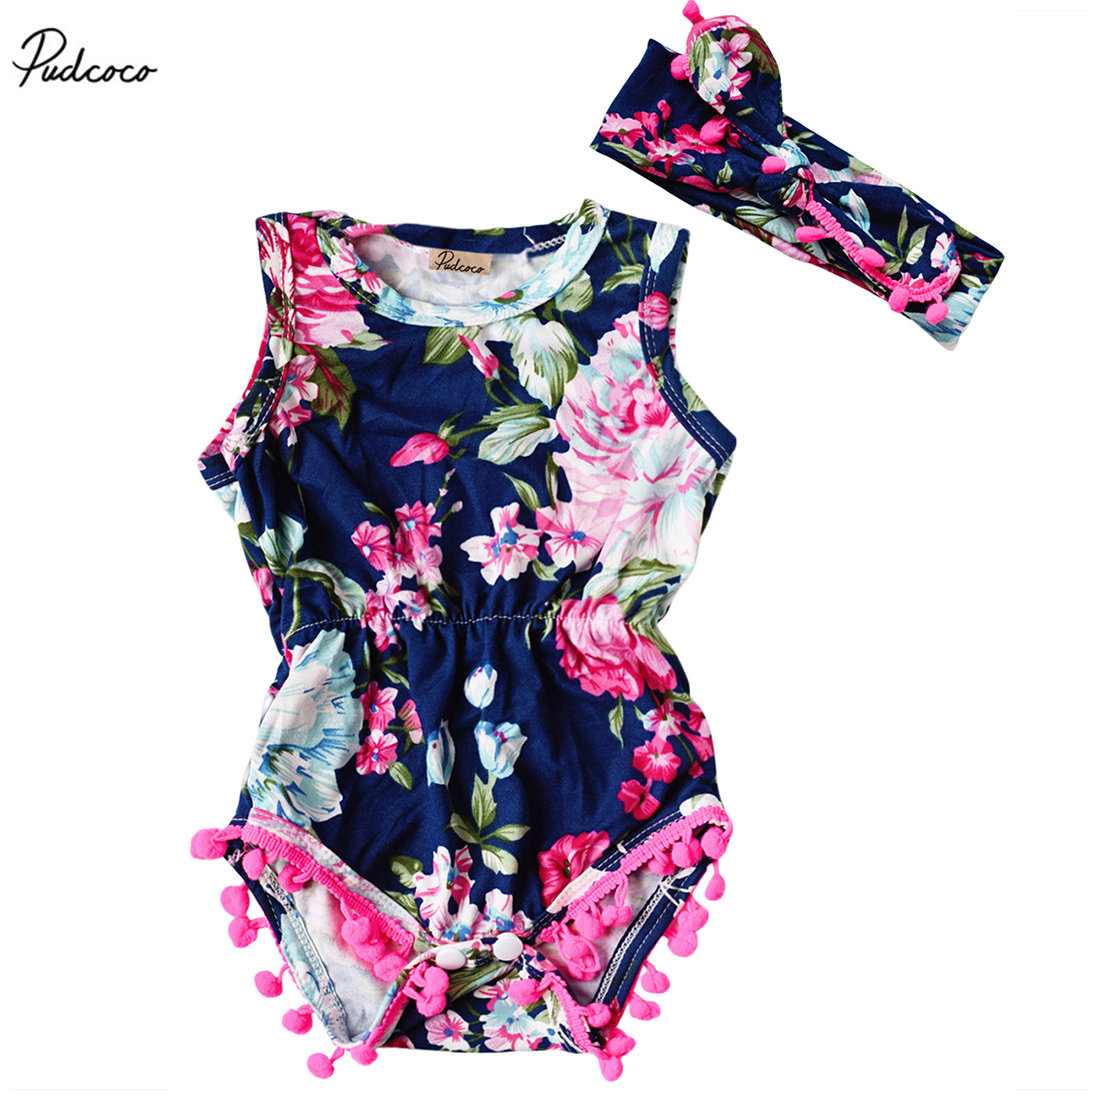 Newborn Baby Girls 2017 New Summer Floral   Romper   Sleeveless Tassel Jumpsuit Headband Sunsuit Outfits Clothes 0-24M